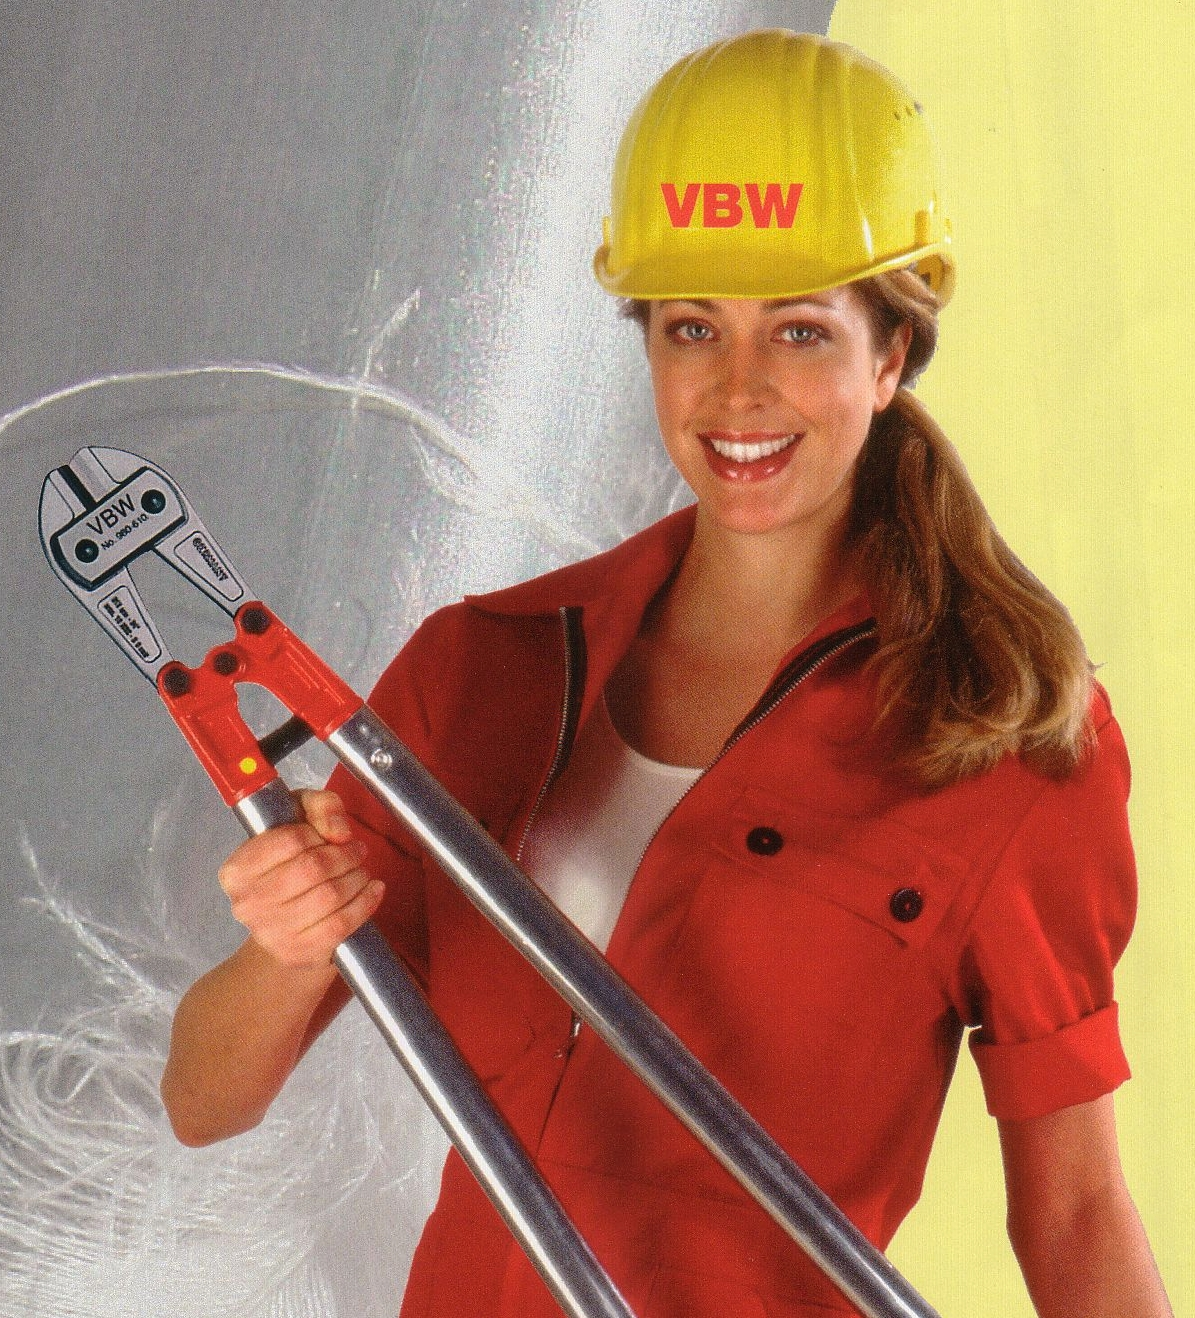 VBW Germany Bolt Cutters